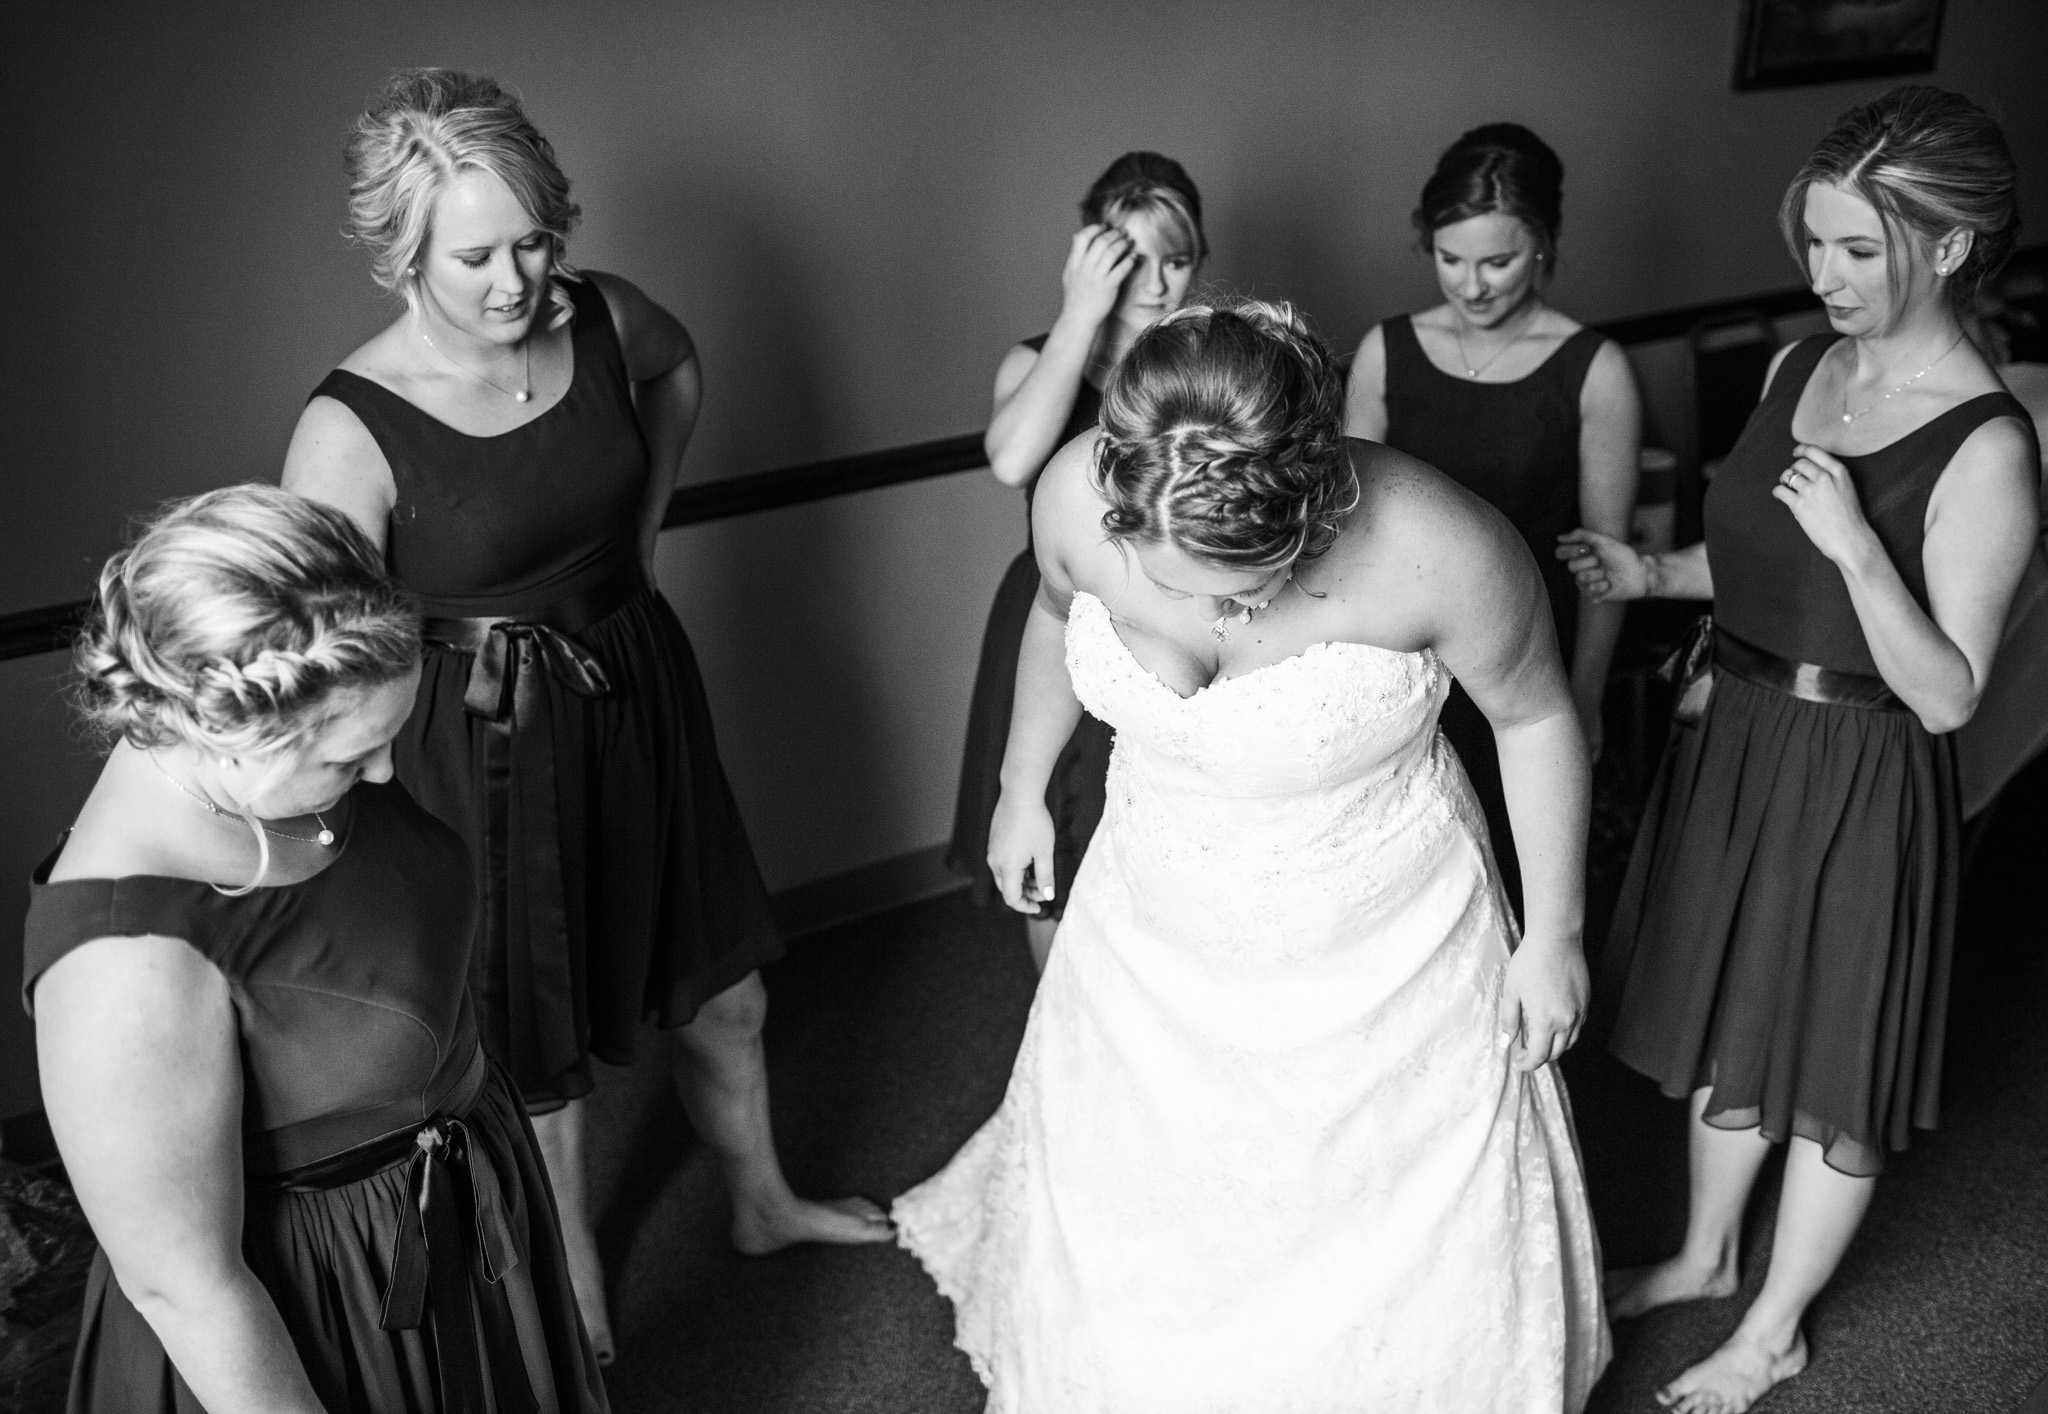 Zibell Spring Wedding, Bride and Groom, Powerful, Connected, Exploration, Laura Duggleby Photography -62.JPG